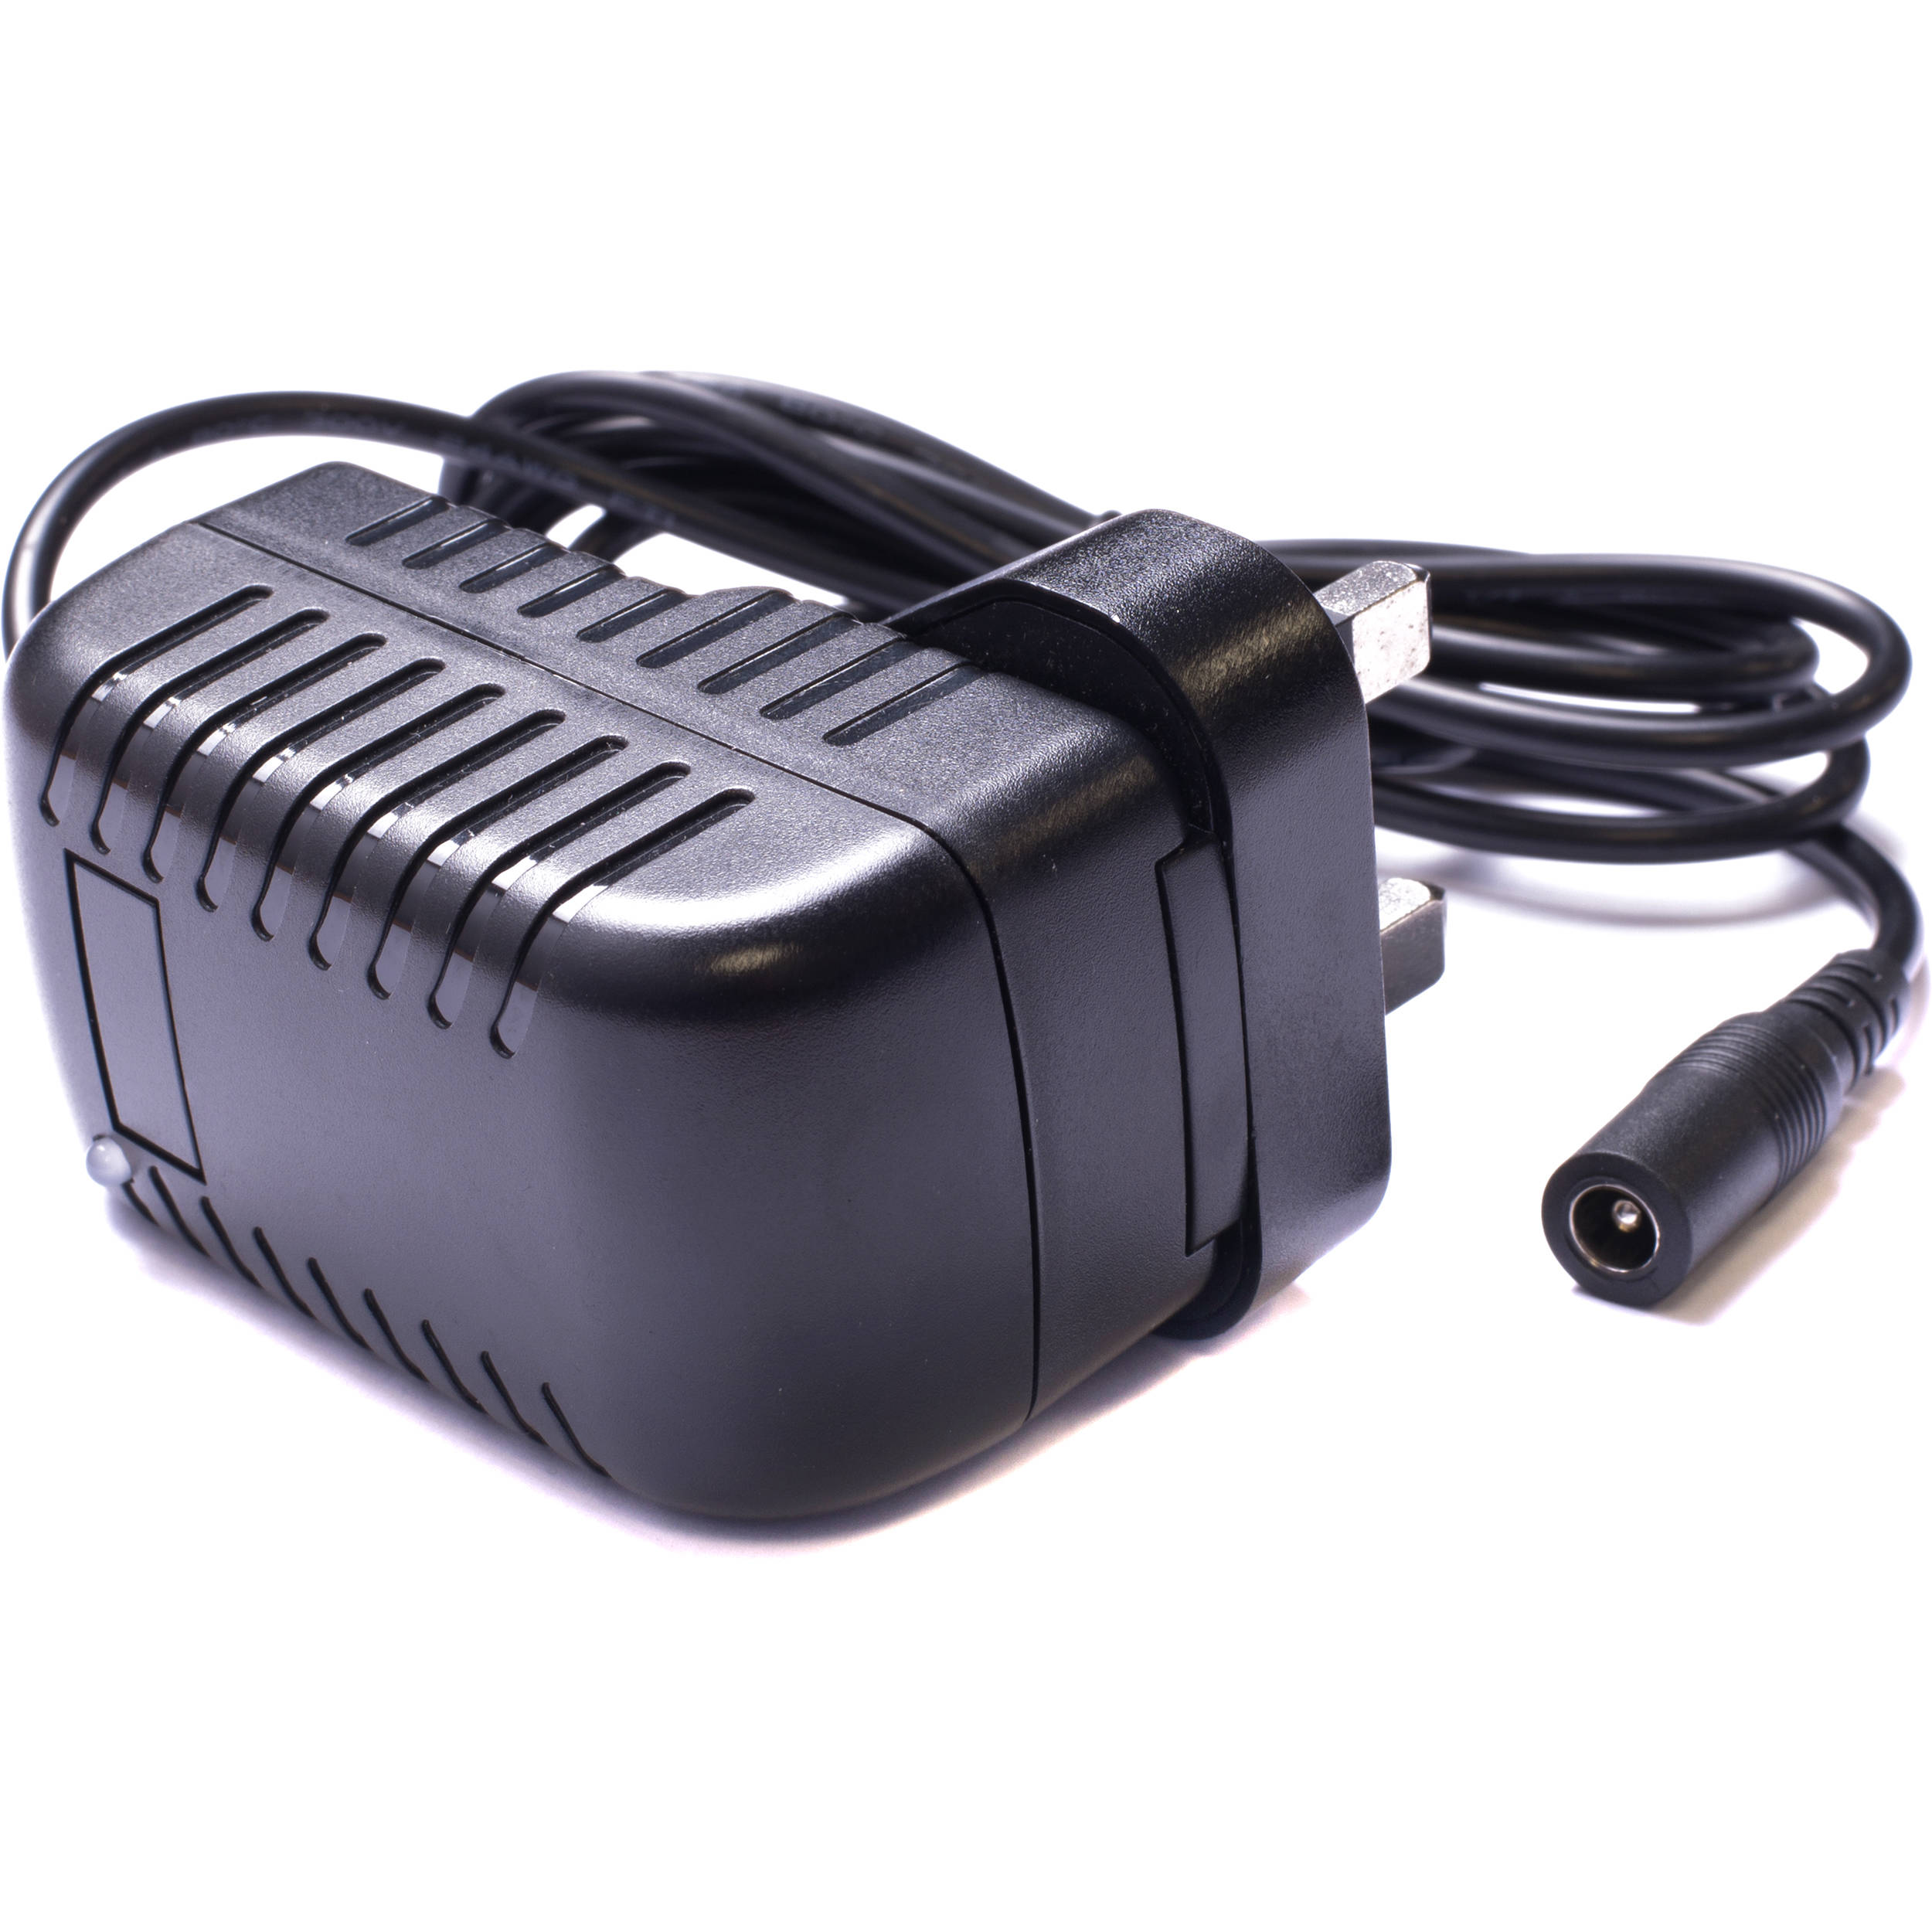 Https C Product 1413475 Reg Subwoofer Purple Storm Ps 12 Nitesite 200012 1 8a Mains Charger For 1412139